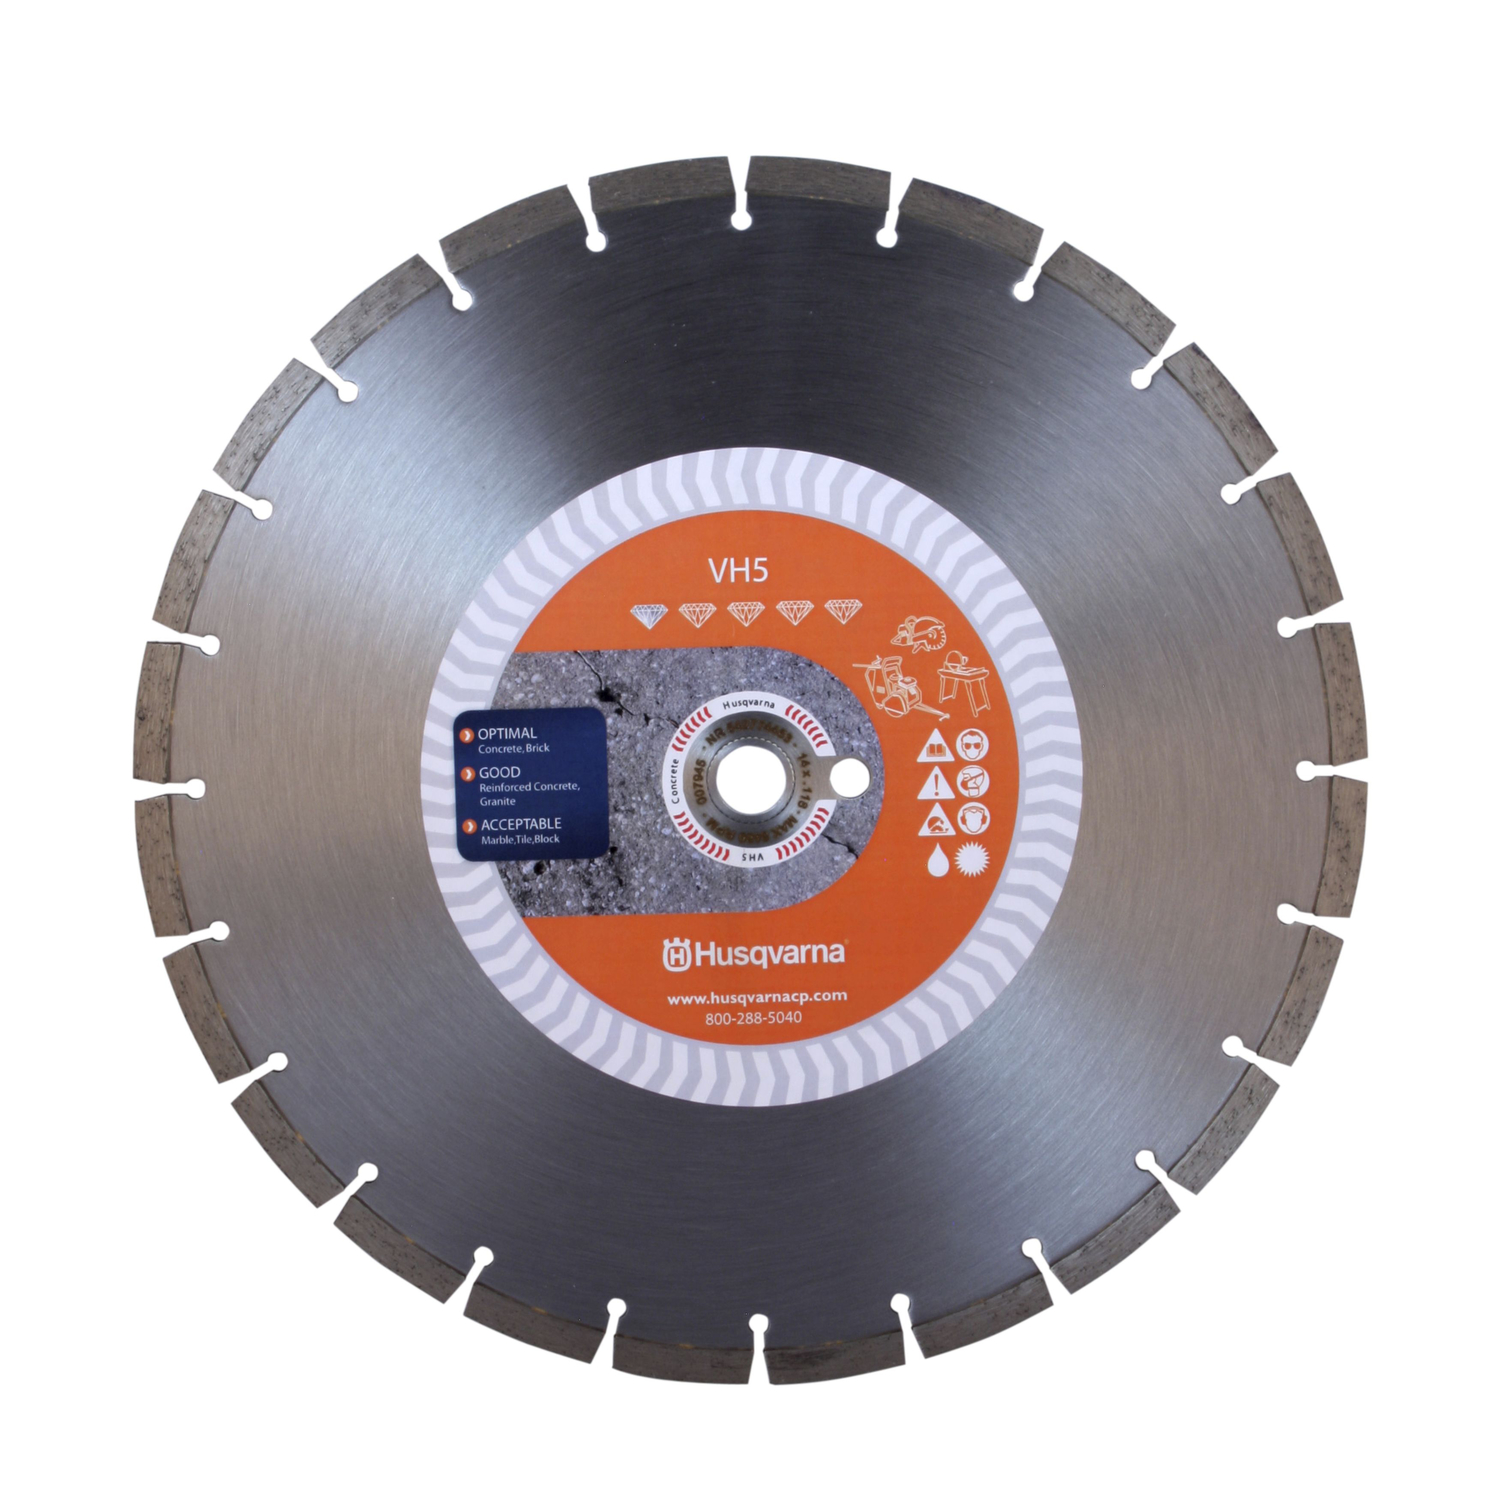 Husqvarna  VH5  12  Diamond Saw Blade  1 pk